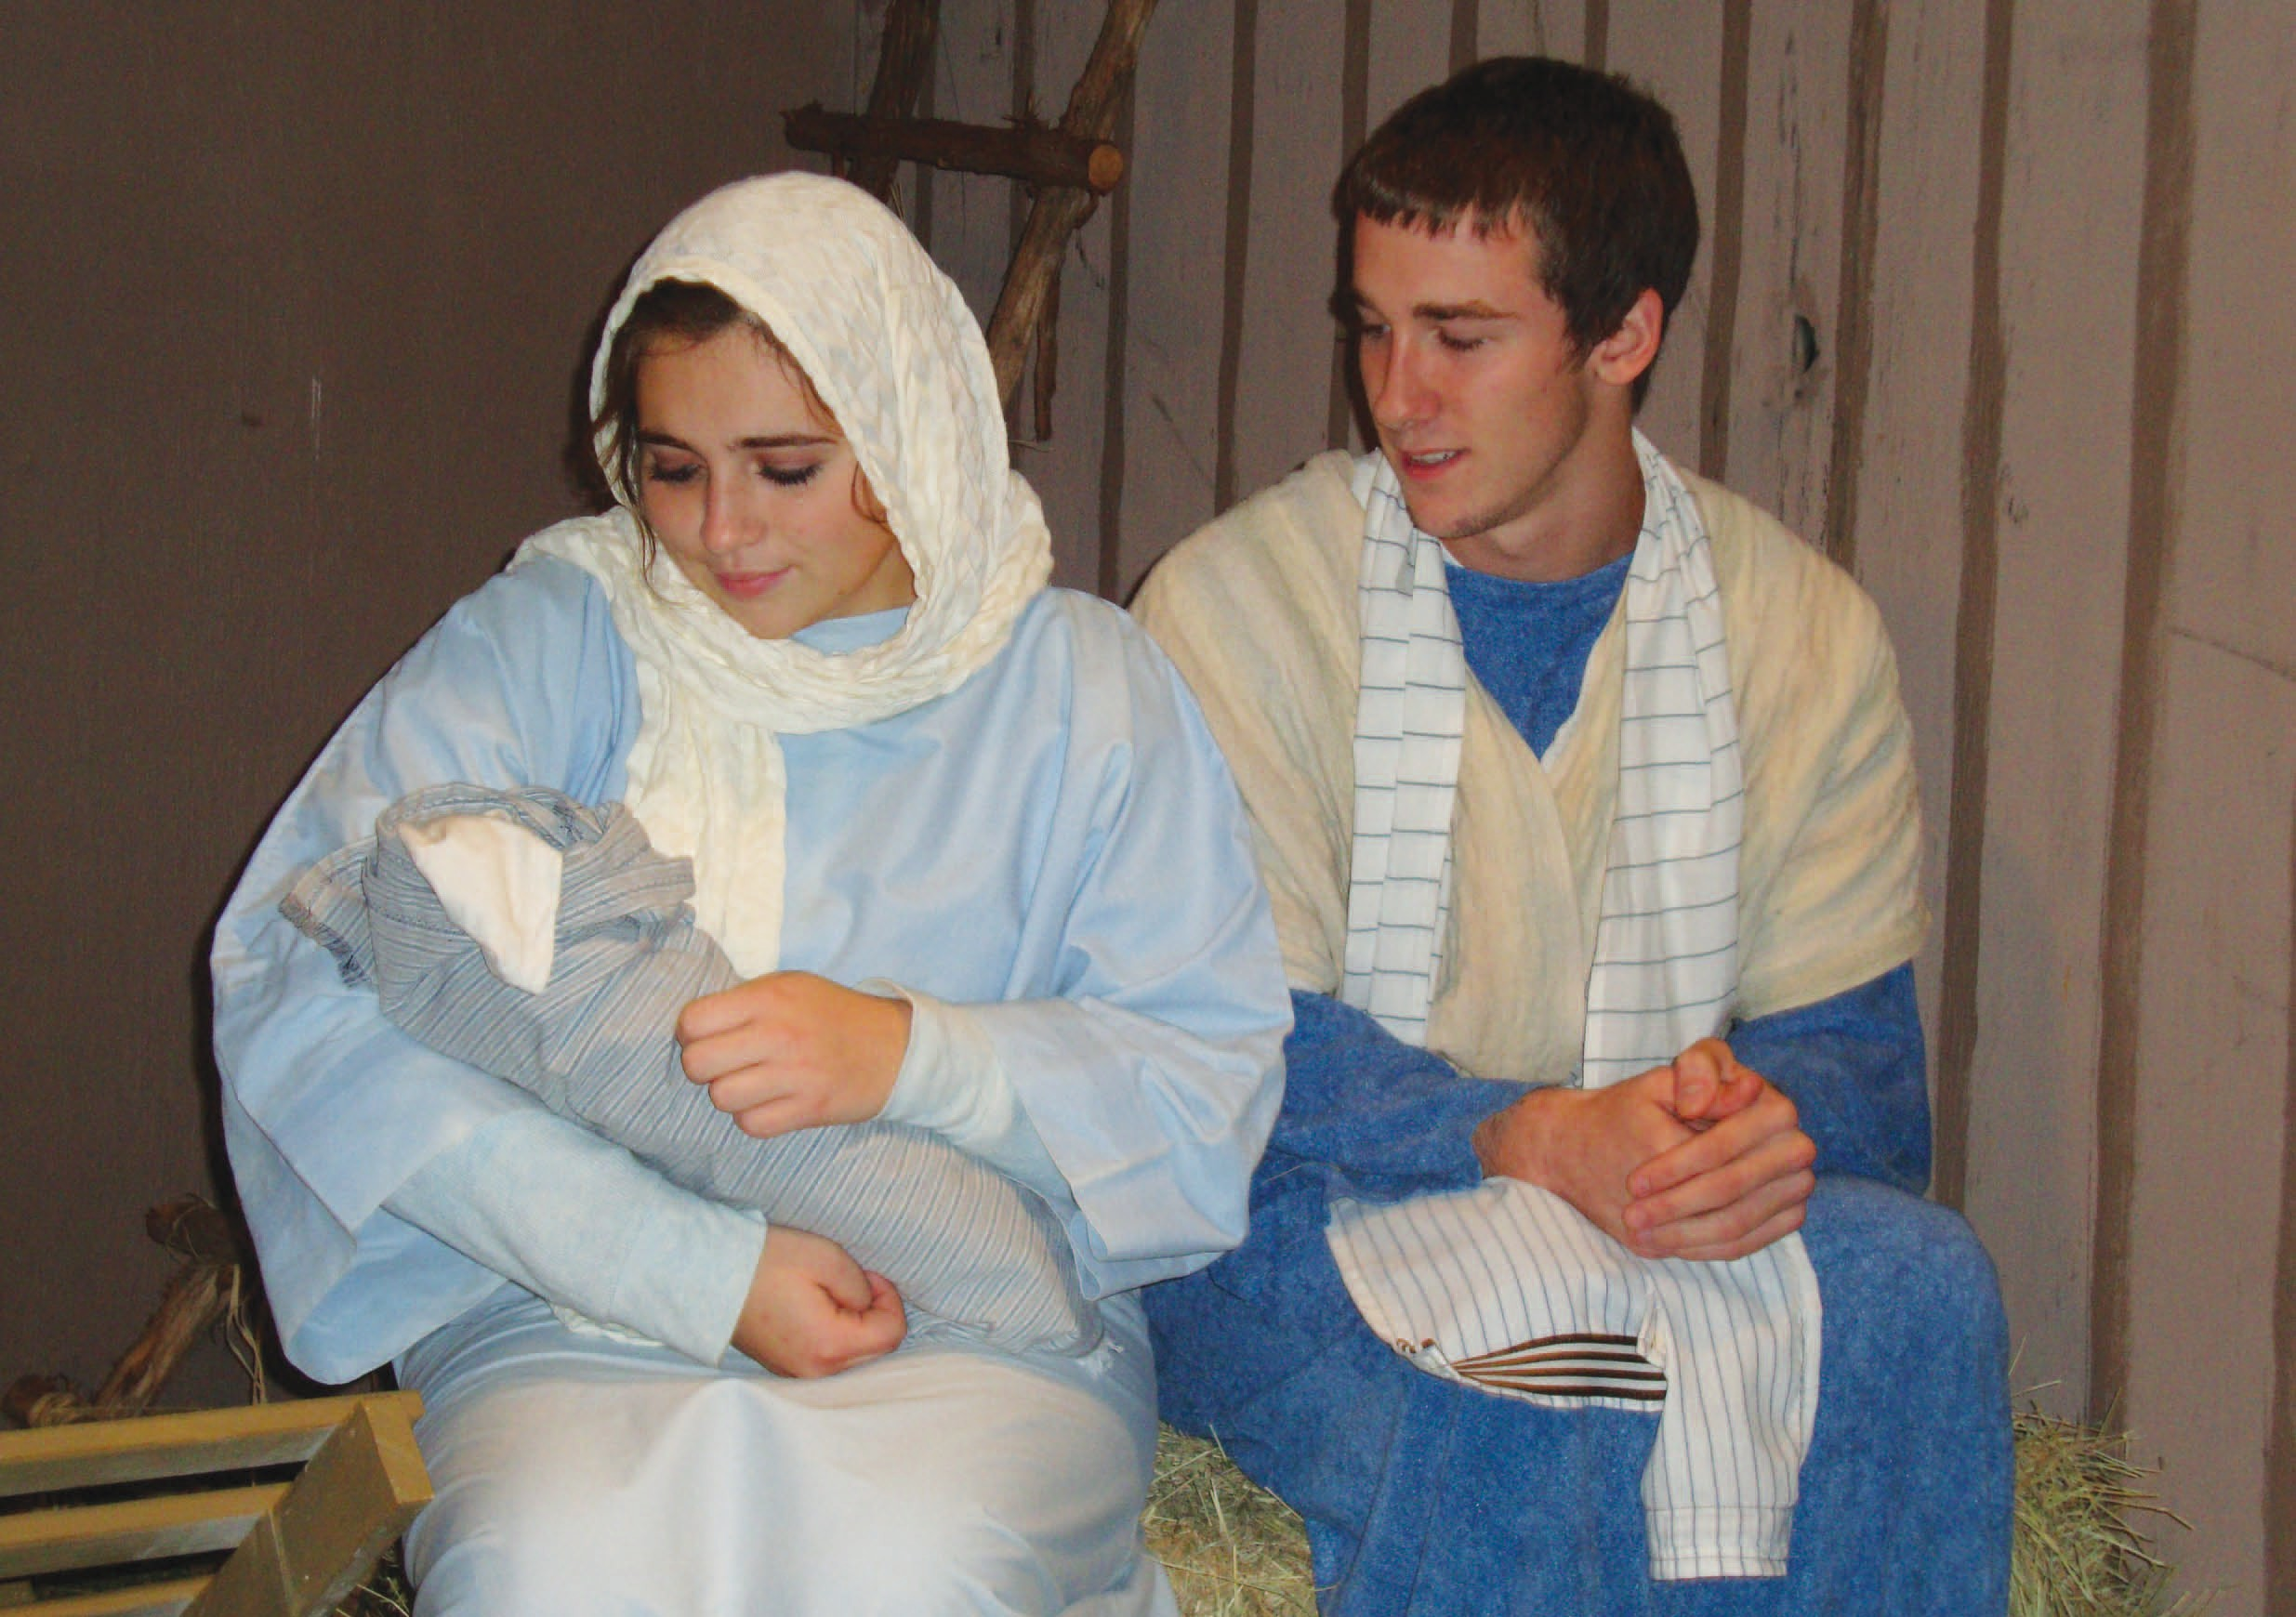 Mary and Joseph welcome the Christ Child (Stephanie Rivera and Garrett McDermott) in the manger scene at The Christmas Village earlier this month. We wish you and yours a joyous Christmas. Please see page 2B for a complete church service schedule.